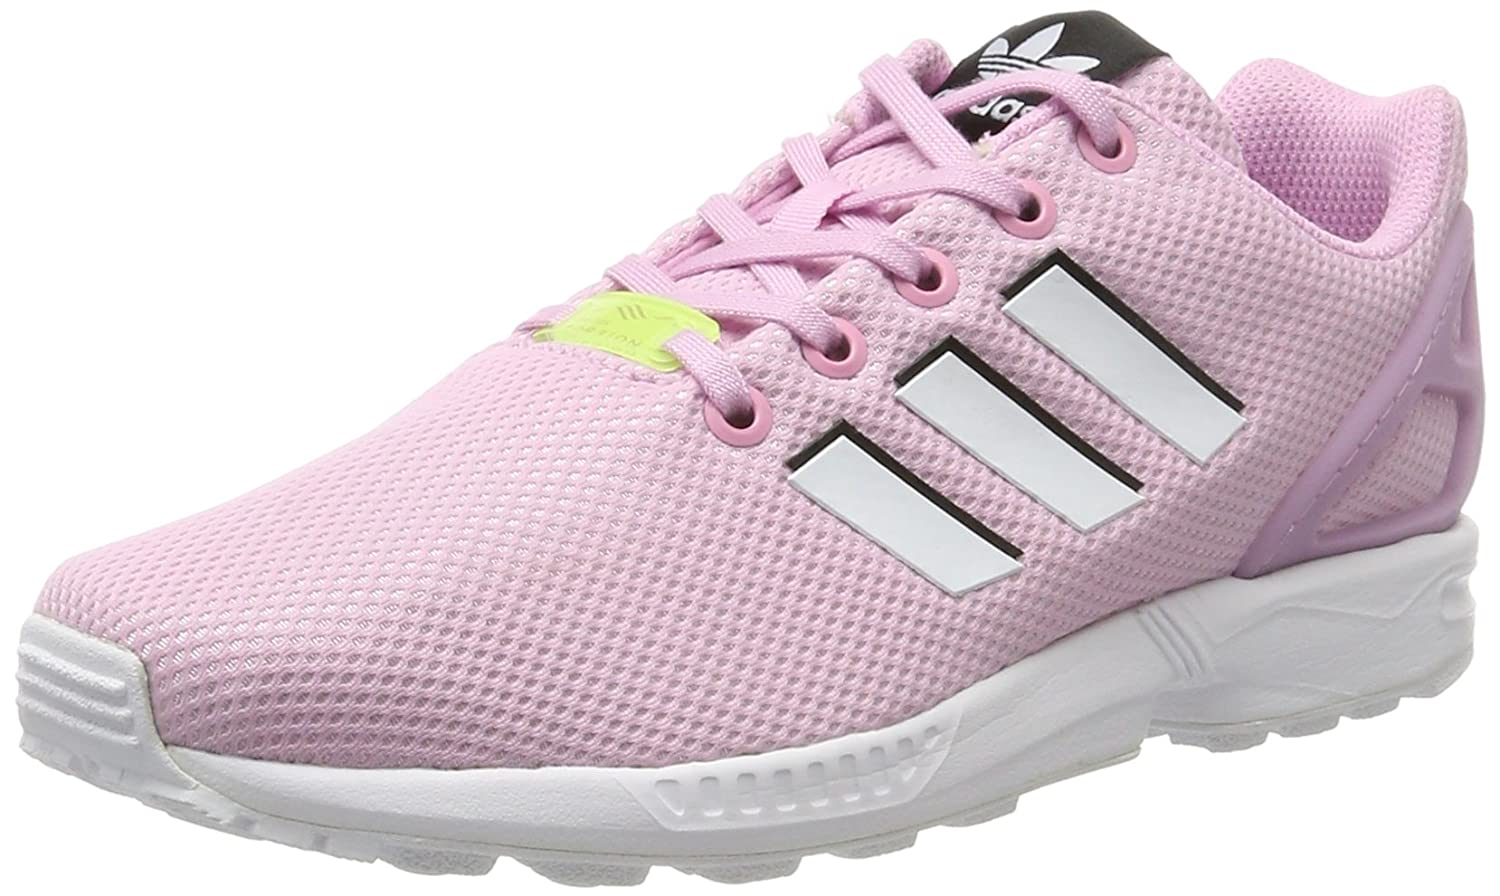 new arrival 9b56e c5f7a Amazon.com | adidas - ZX Flux J - BY9826 - Color: White-Pink ...